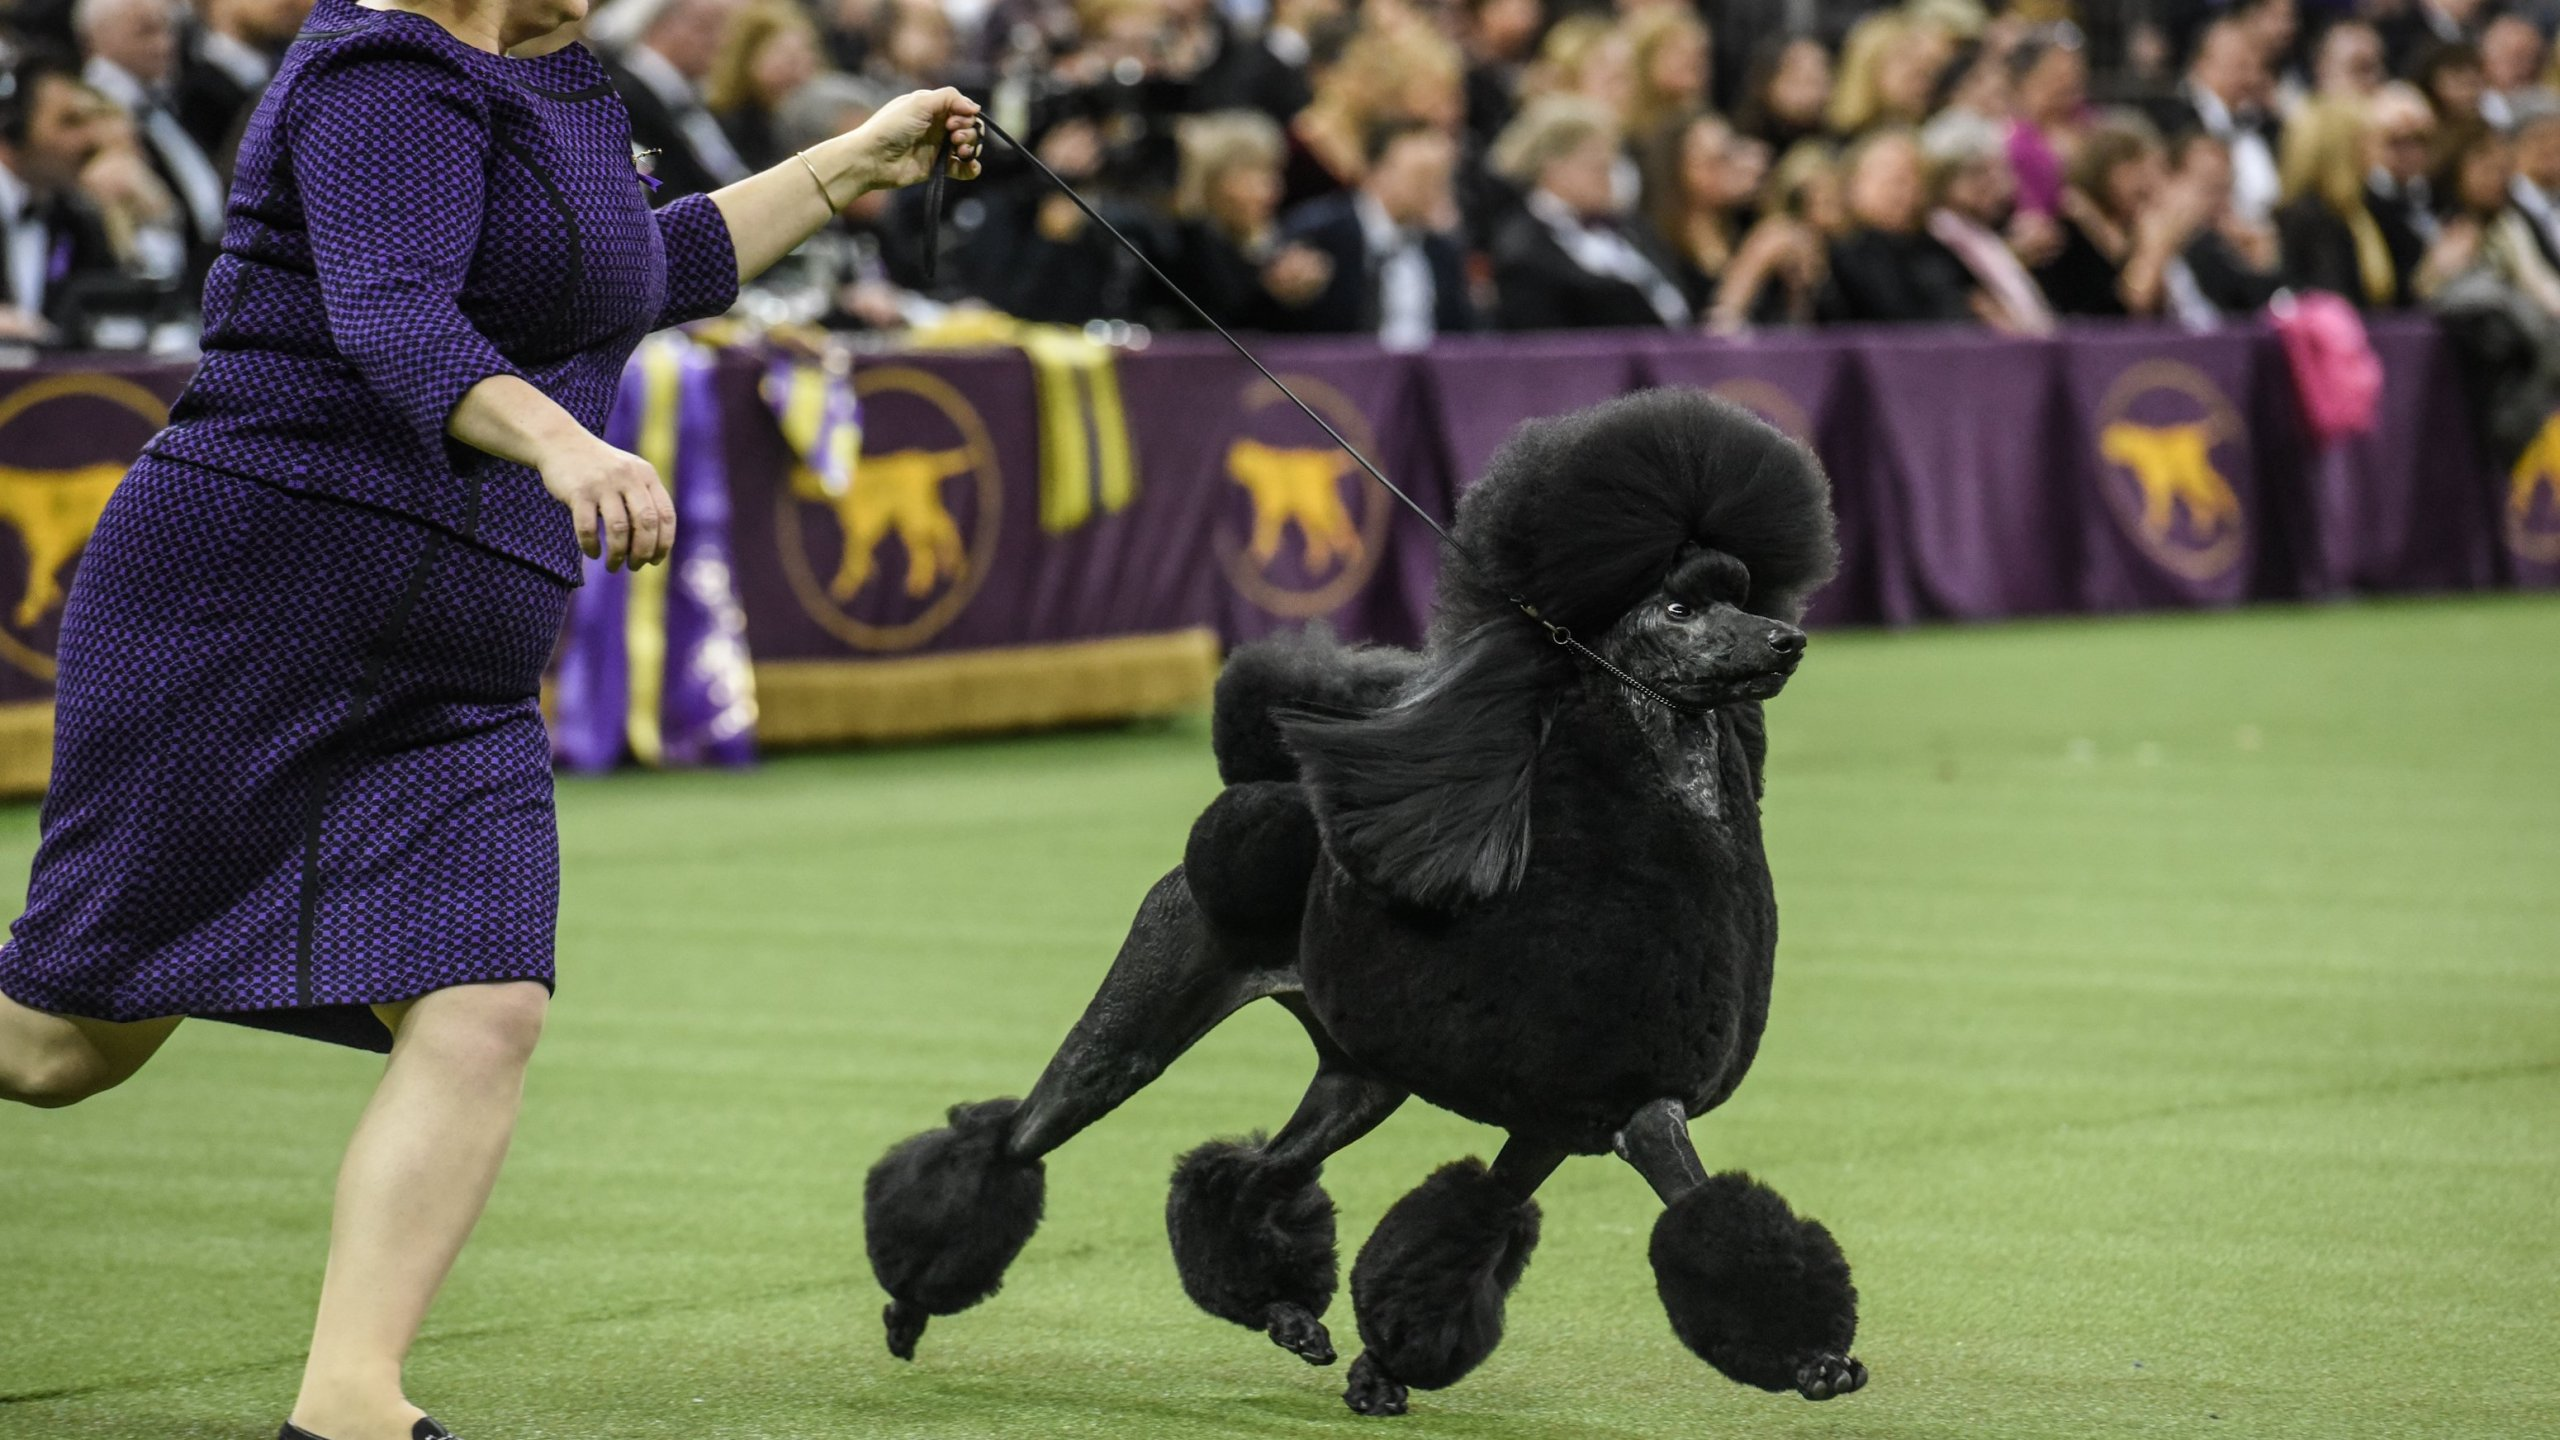 A Standard Poodle named Siba wins Best in Show during the annual Westminster Kennel Club dog show on Feb. 11, 2020 in New York City. (Credit: Stephanie Keith/Getty Images)